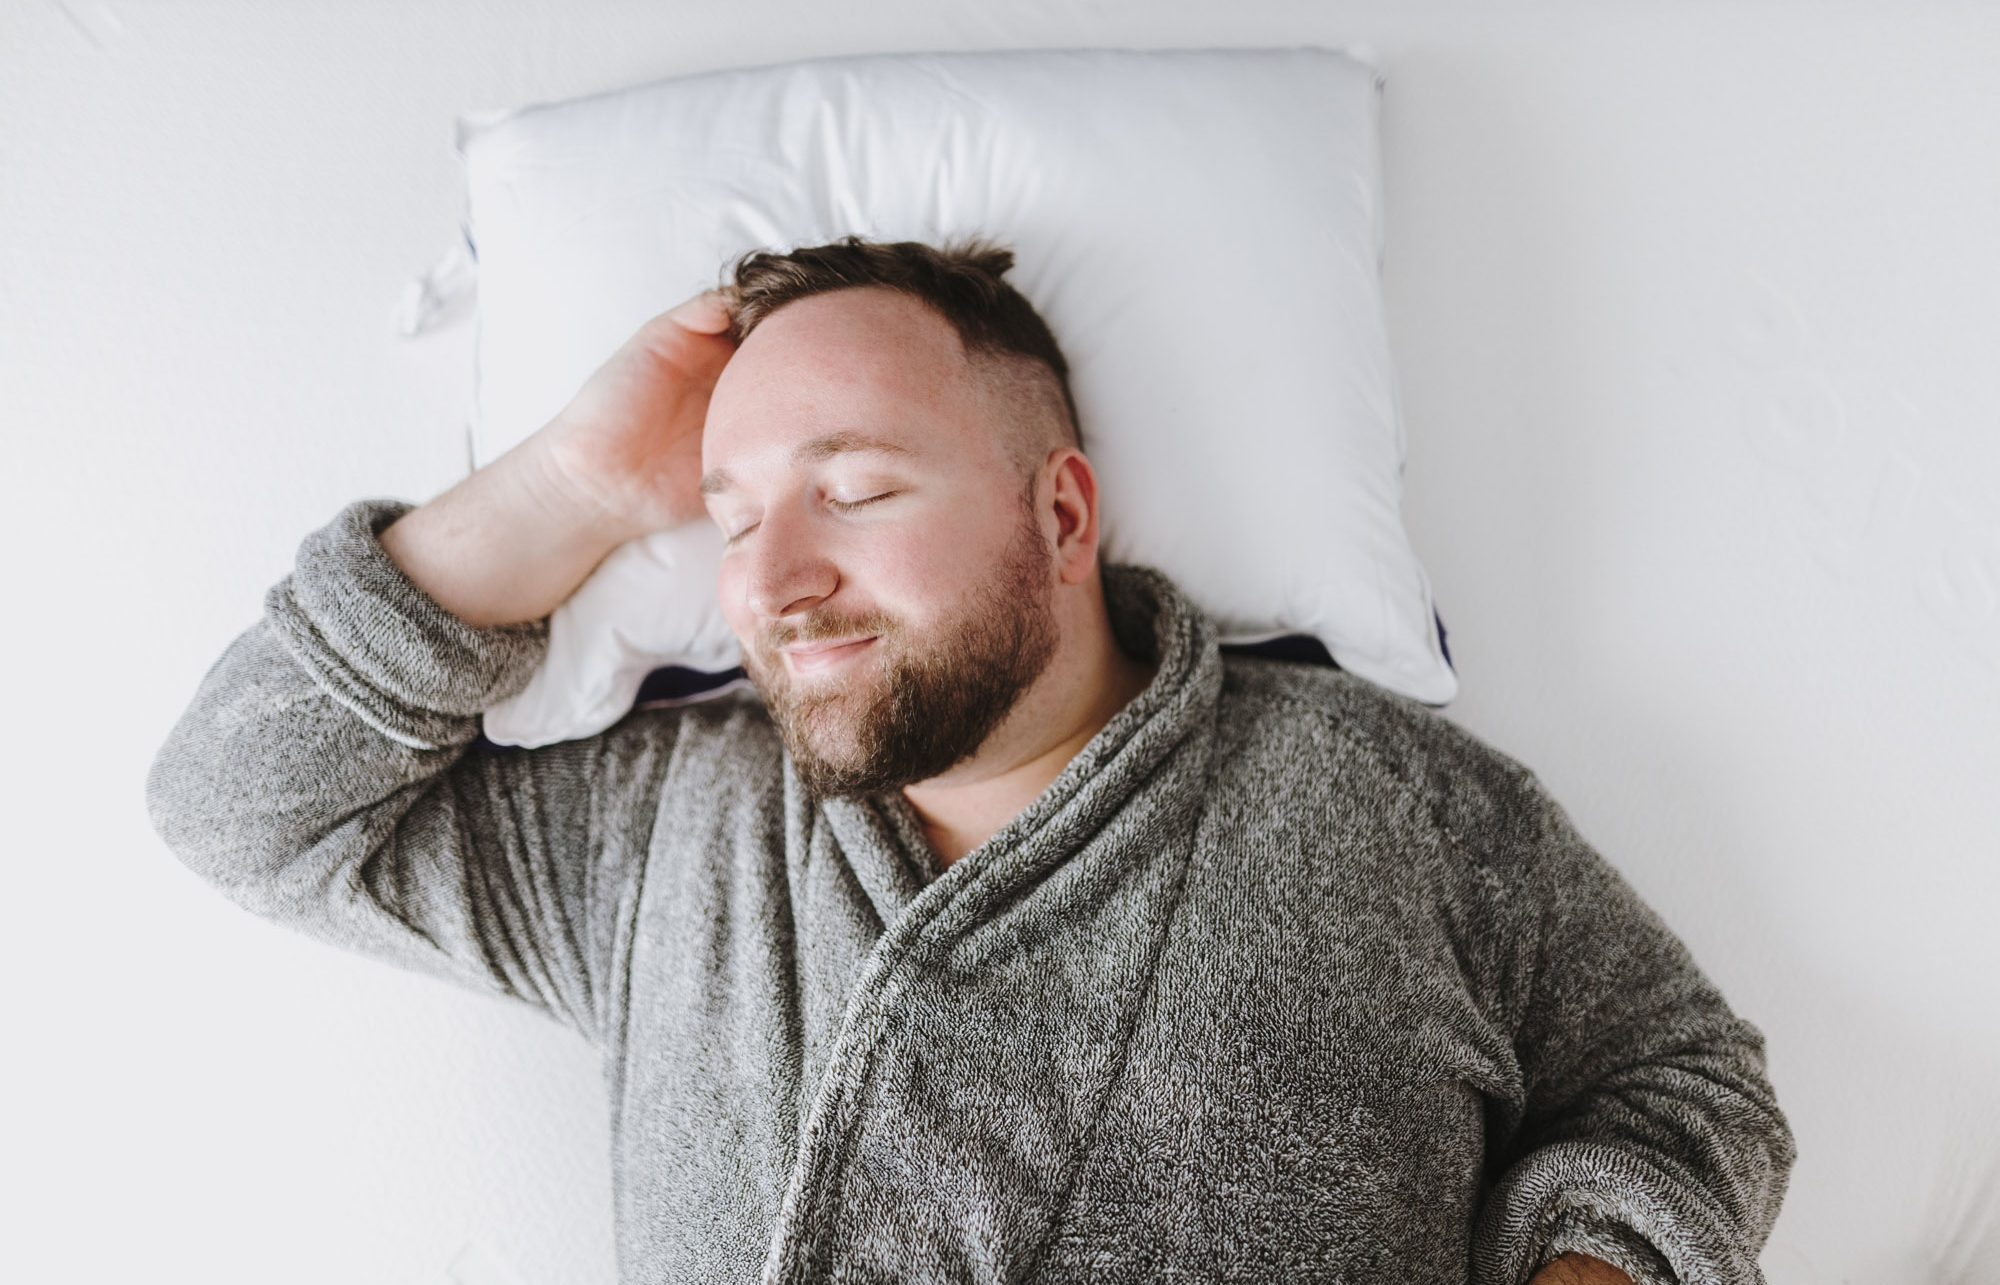 Polysleep Mattress — Jeff On The Road — All photos are under Copyright © 2019 Jeff Frenette Photography / dezjeff. To use the photos, please contact me at dezjeff@me.com.